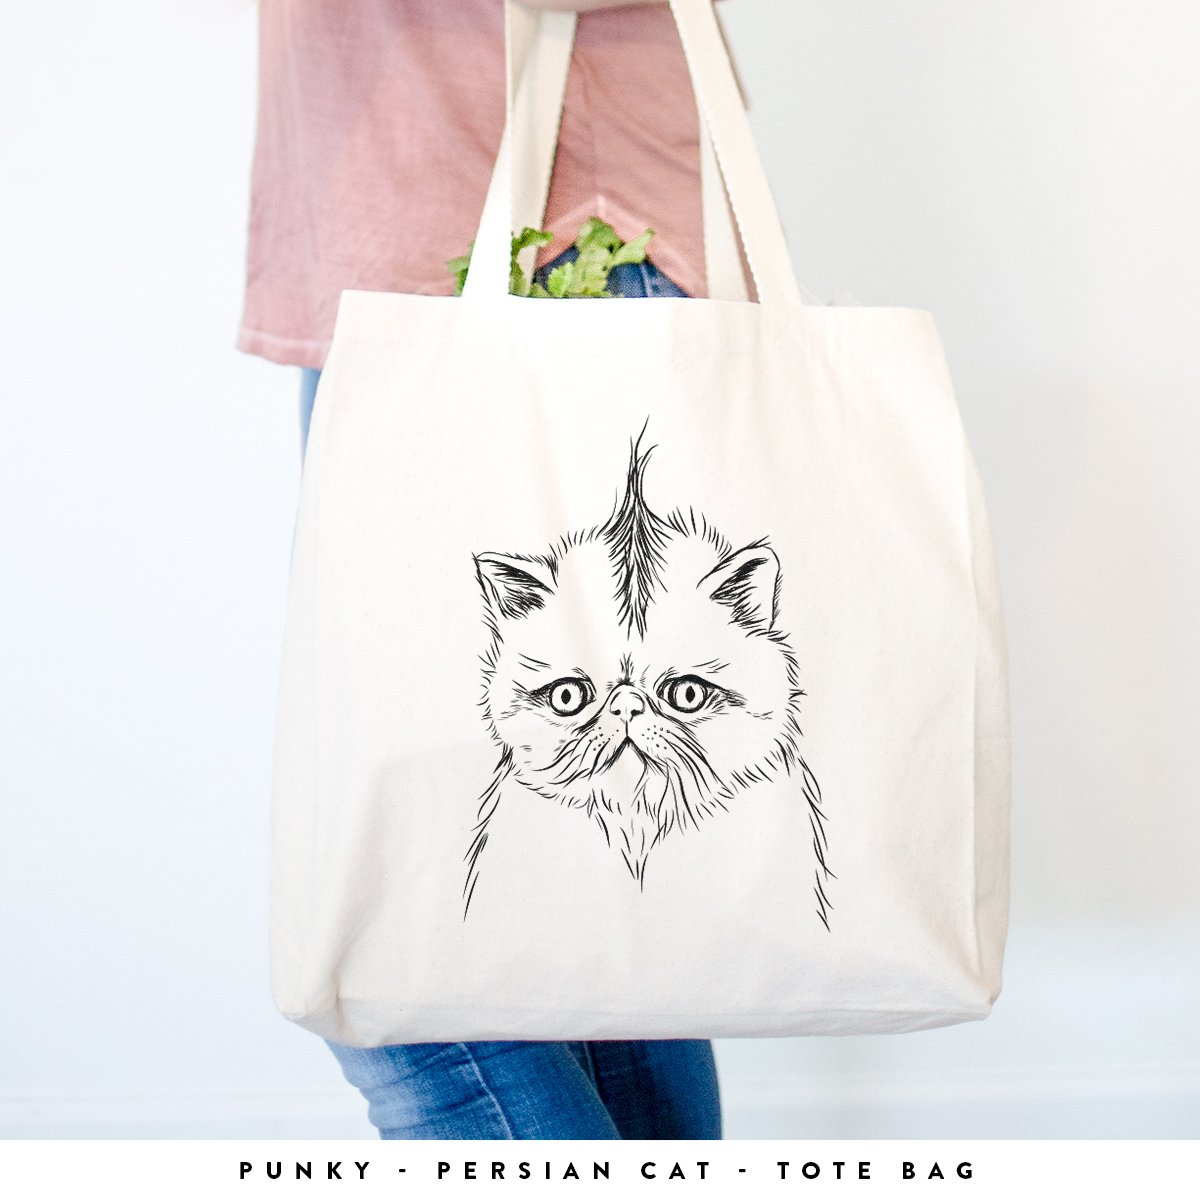 Punky the Persian Cat Heavy Duty 100 %コットンキャンバストートバッグショッピングReusable Grocery Bag 14.75インチx 14.75 X 5 Printed Both Sides ベージュ TOTE-Punky-Persian-2-sides Printed Both Sides  B0793BLD85